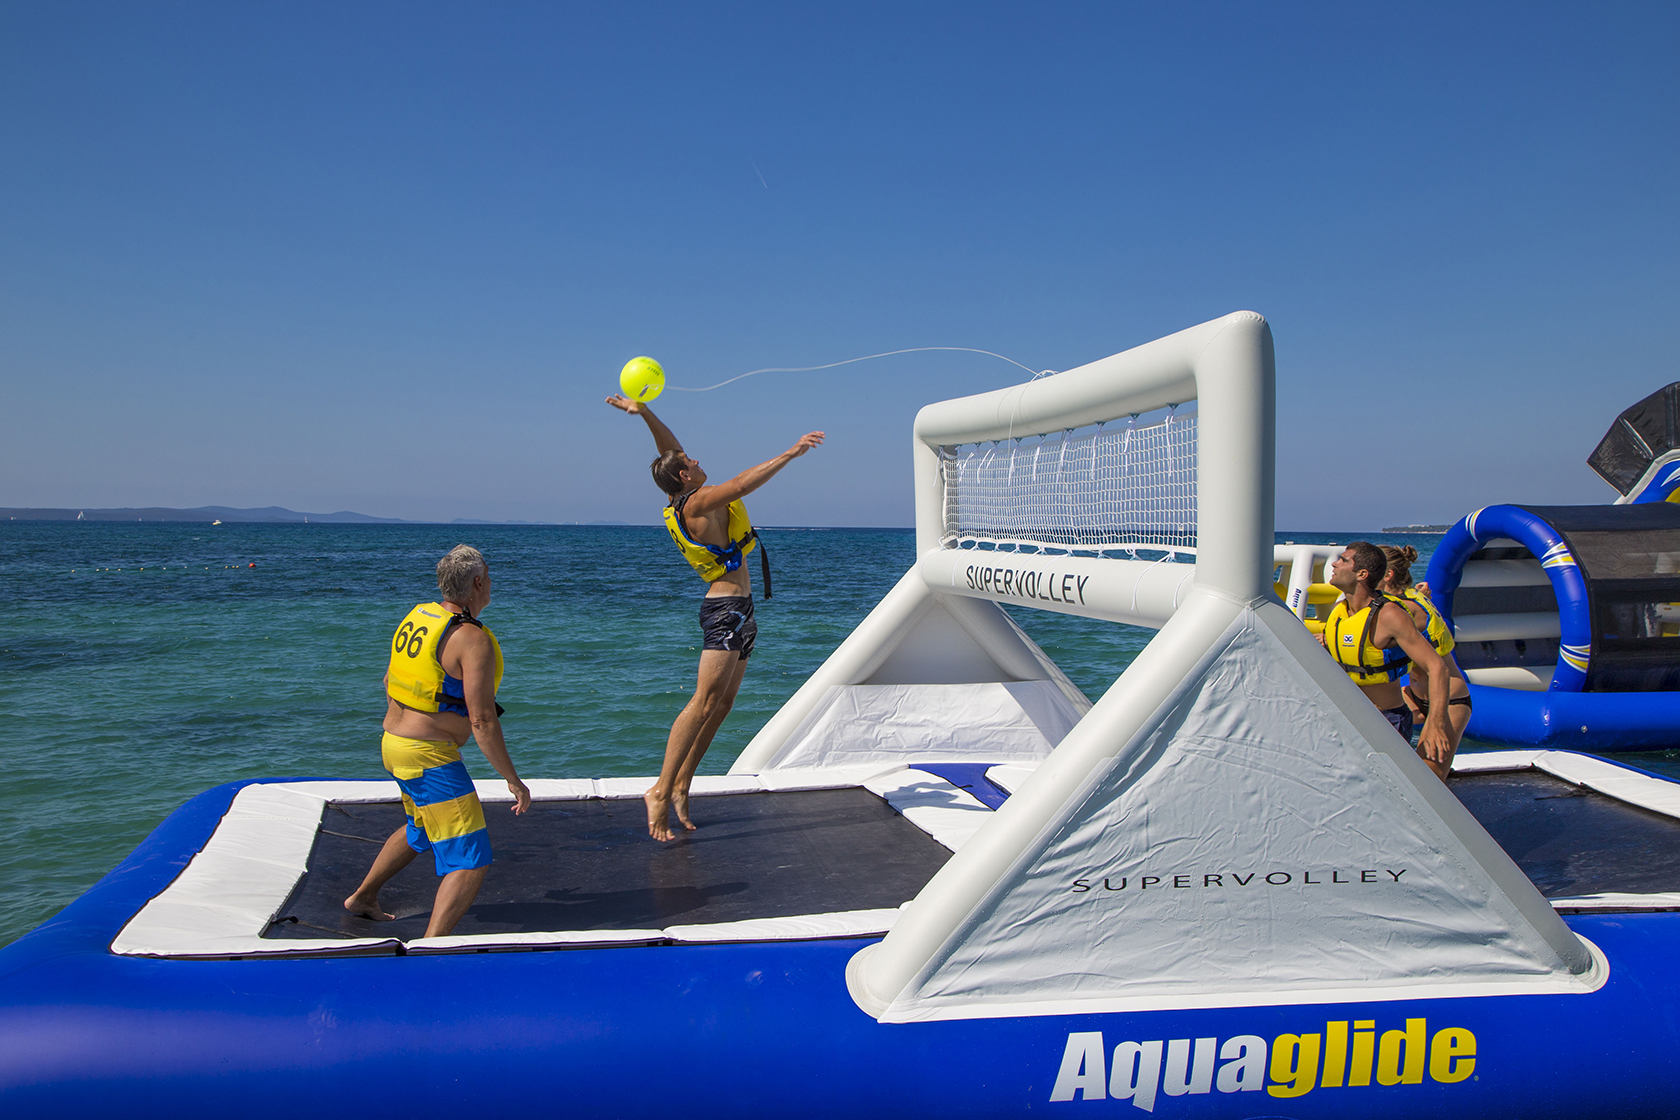 Aquaglide Supervolley 30 Commercial Recreation Specialists